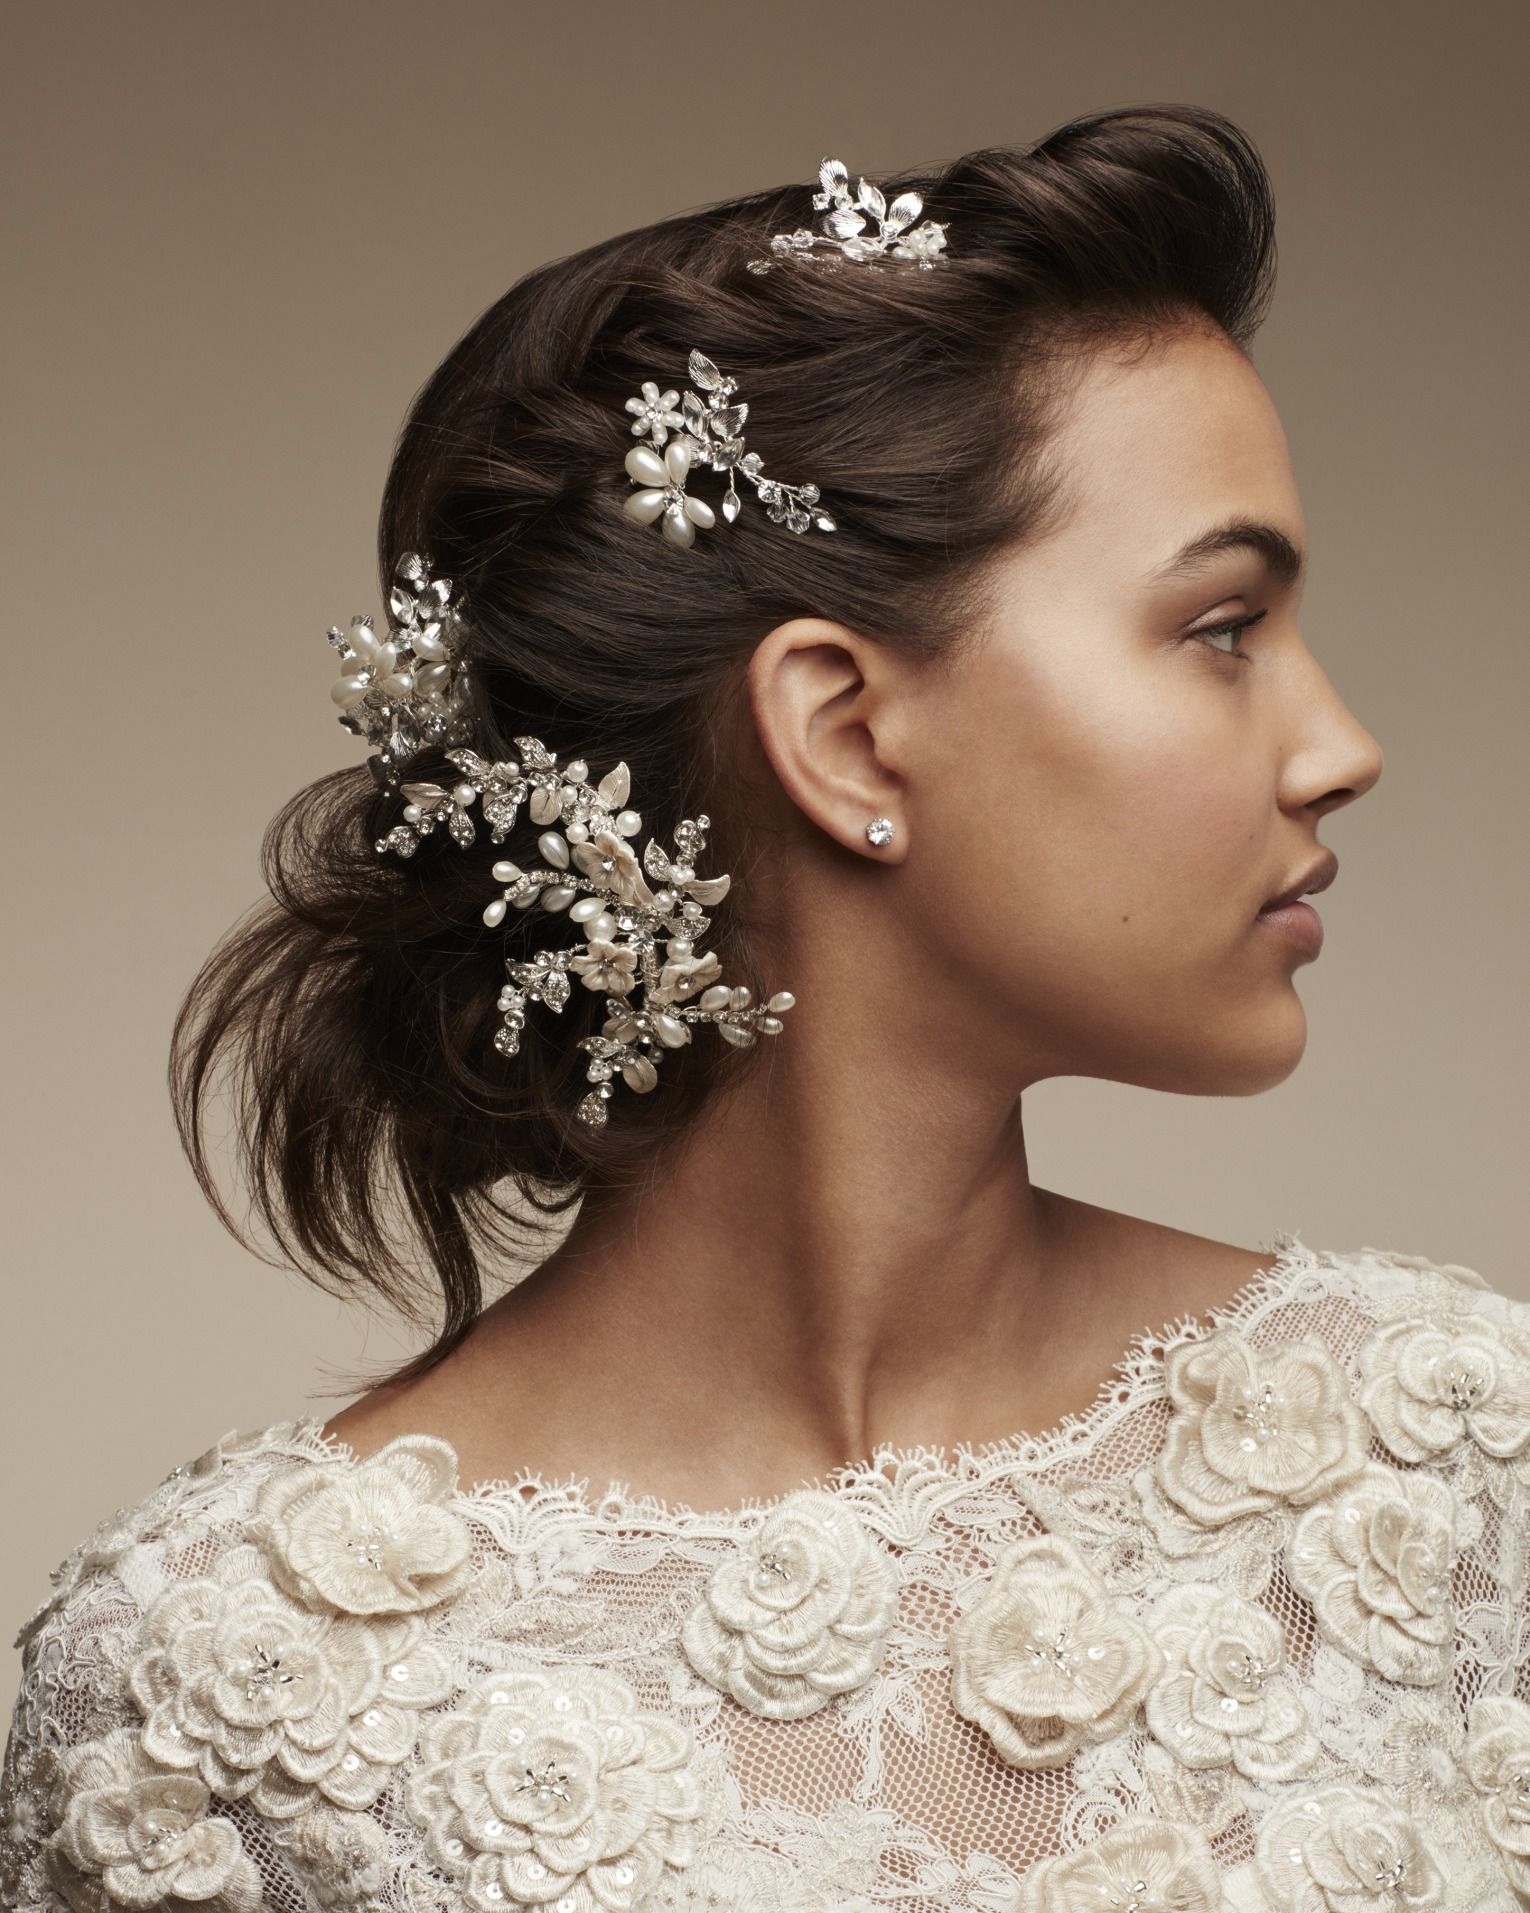 why stop at one wedding hair accessory when you can layer multiple